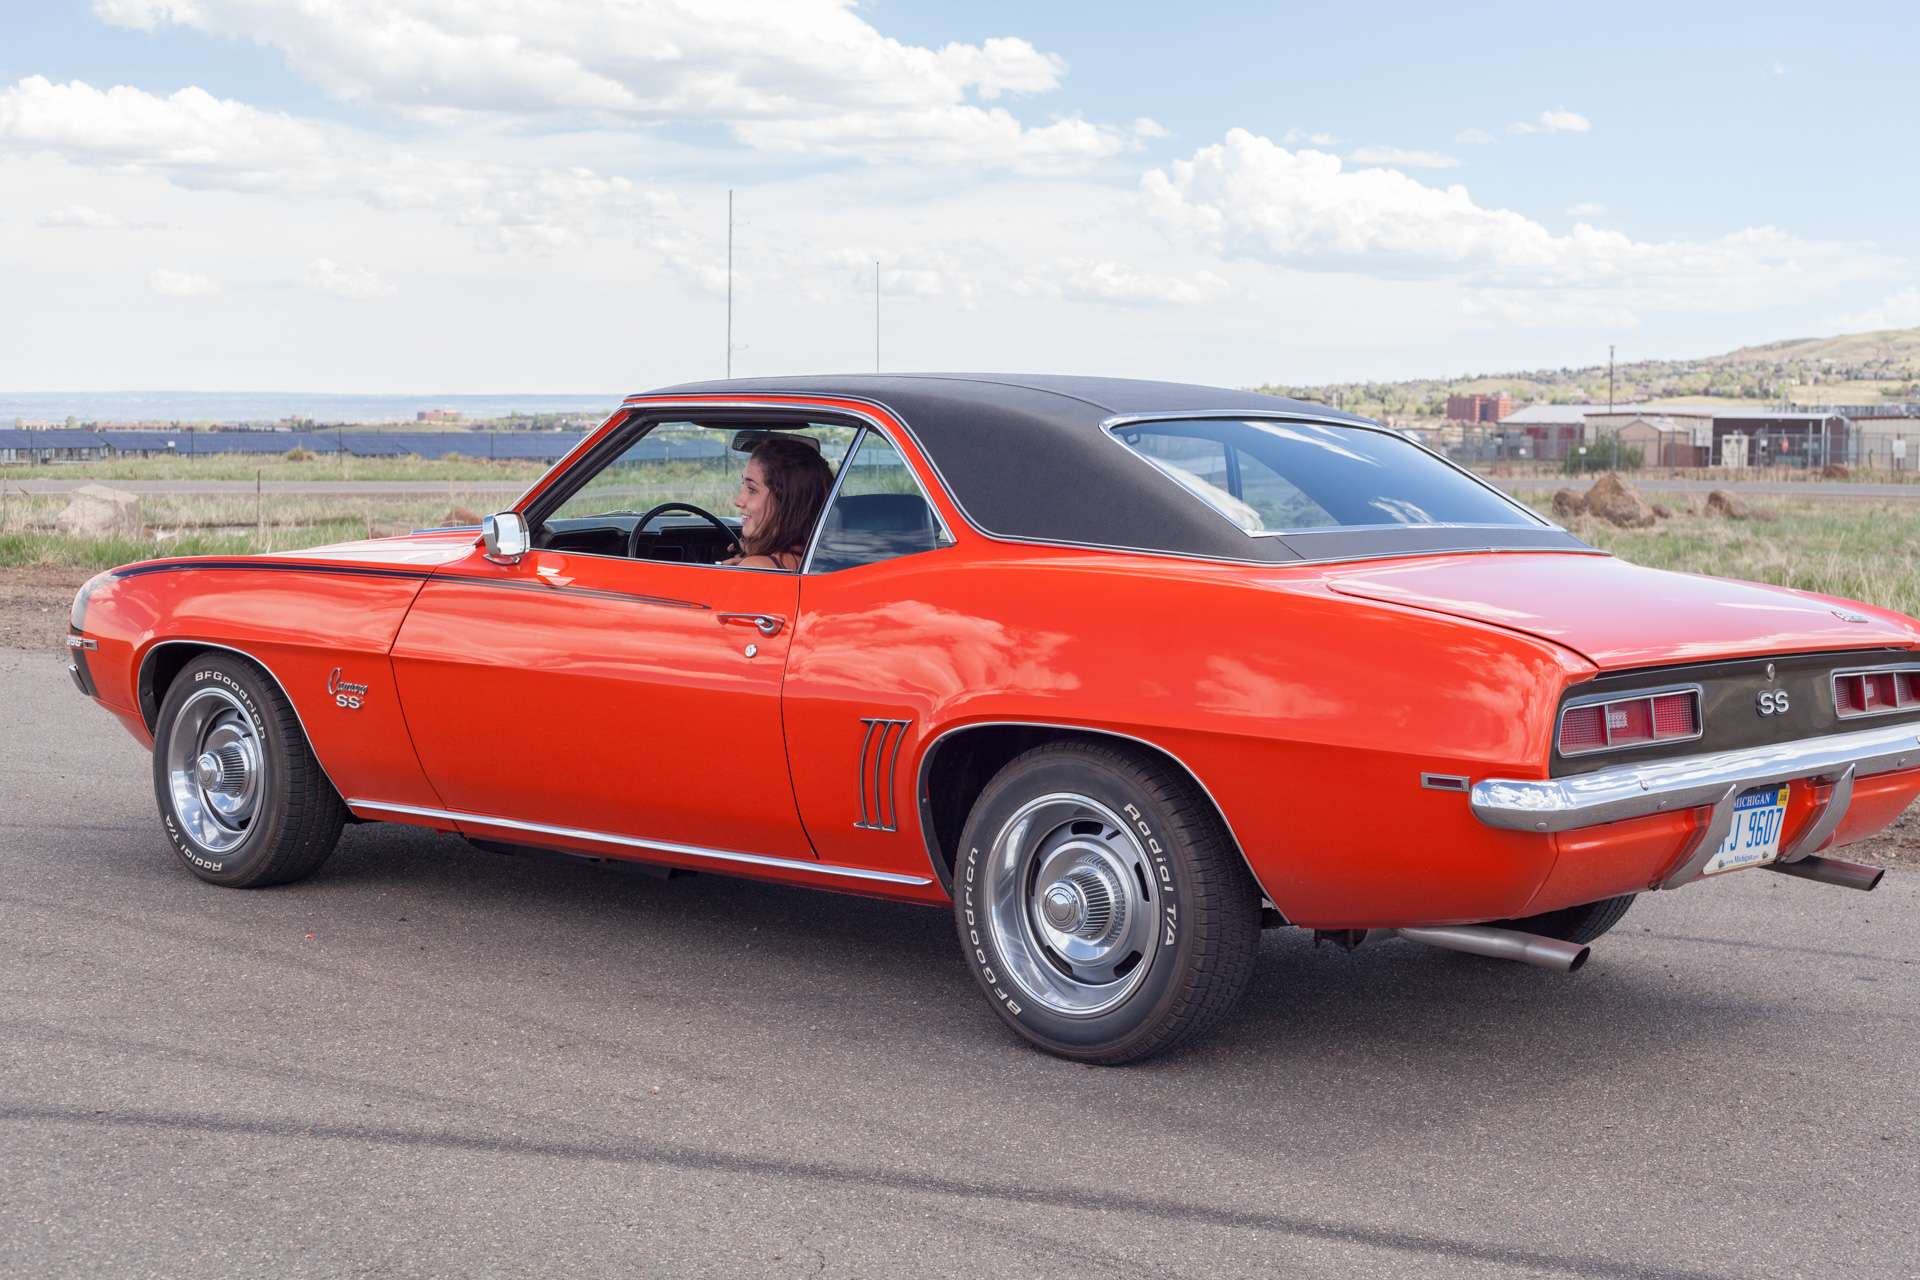 Hagerty launches new car sharing service to rent classic cars